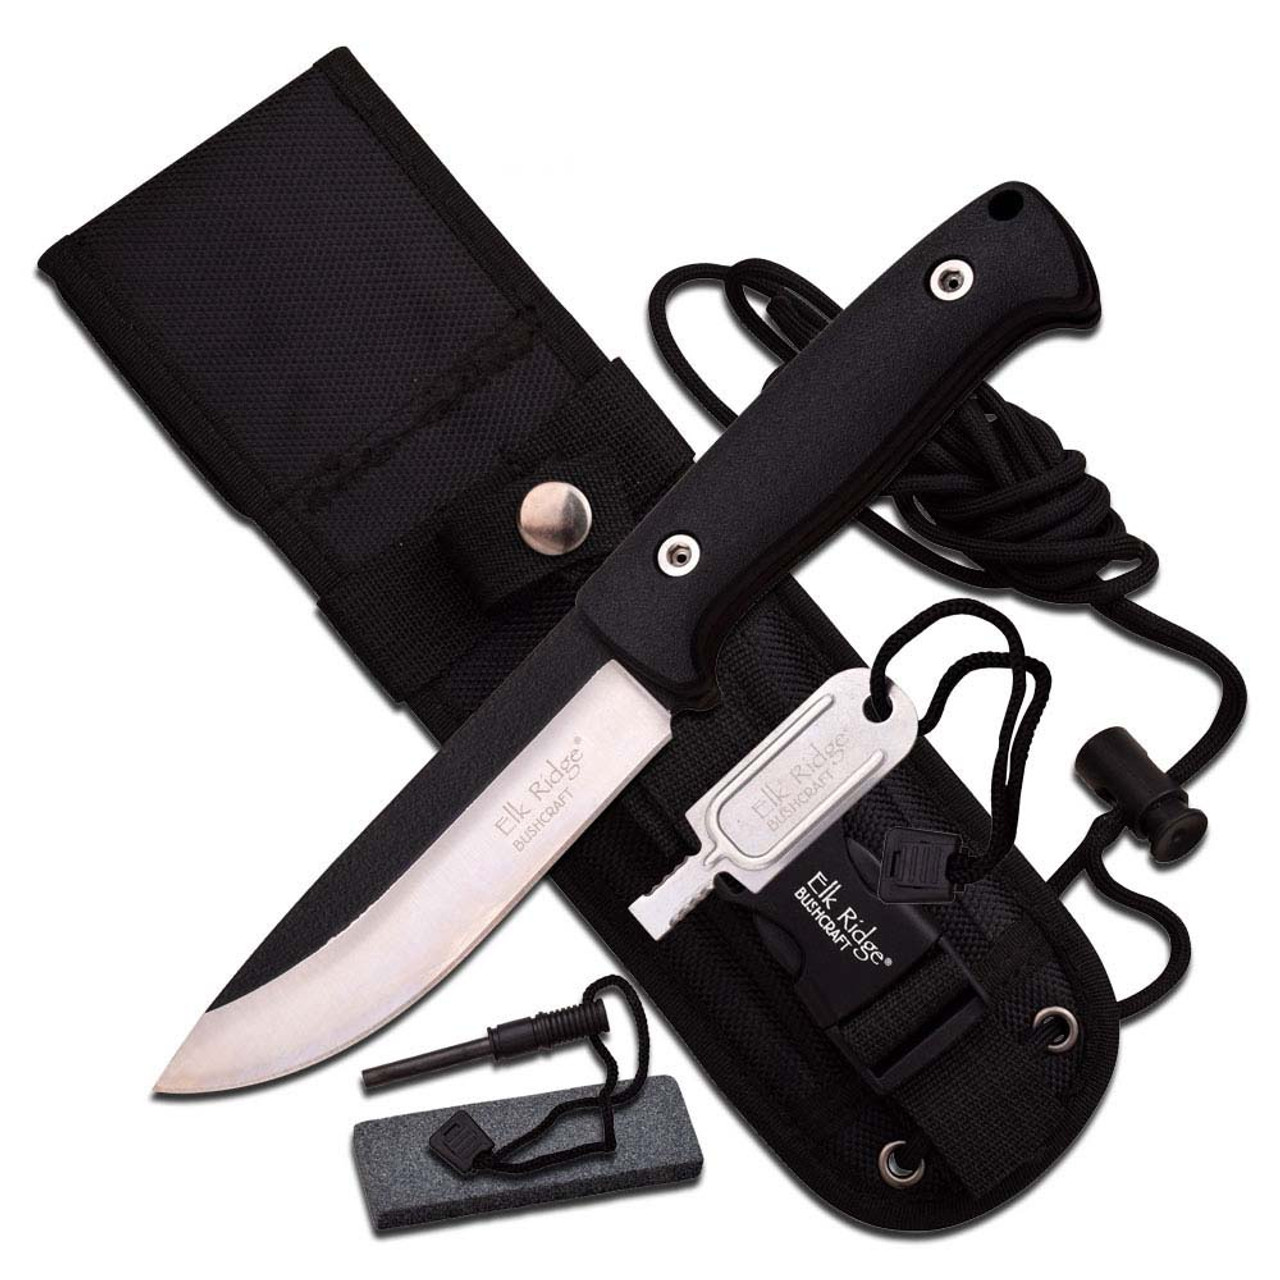 Bushcraft Survival Knife with Fire Starter Fixed Blade